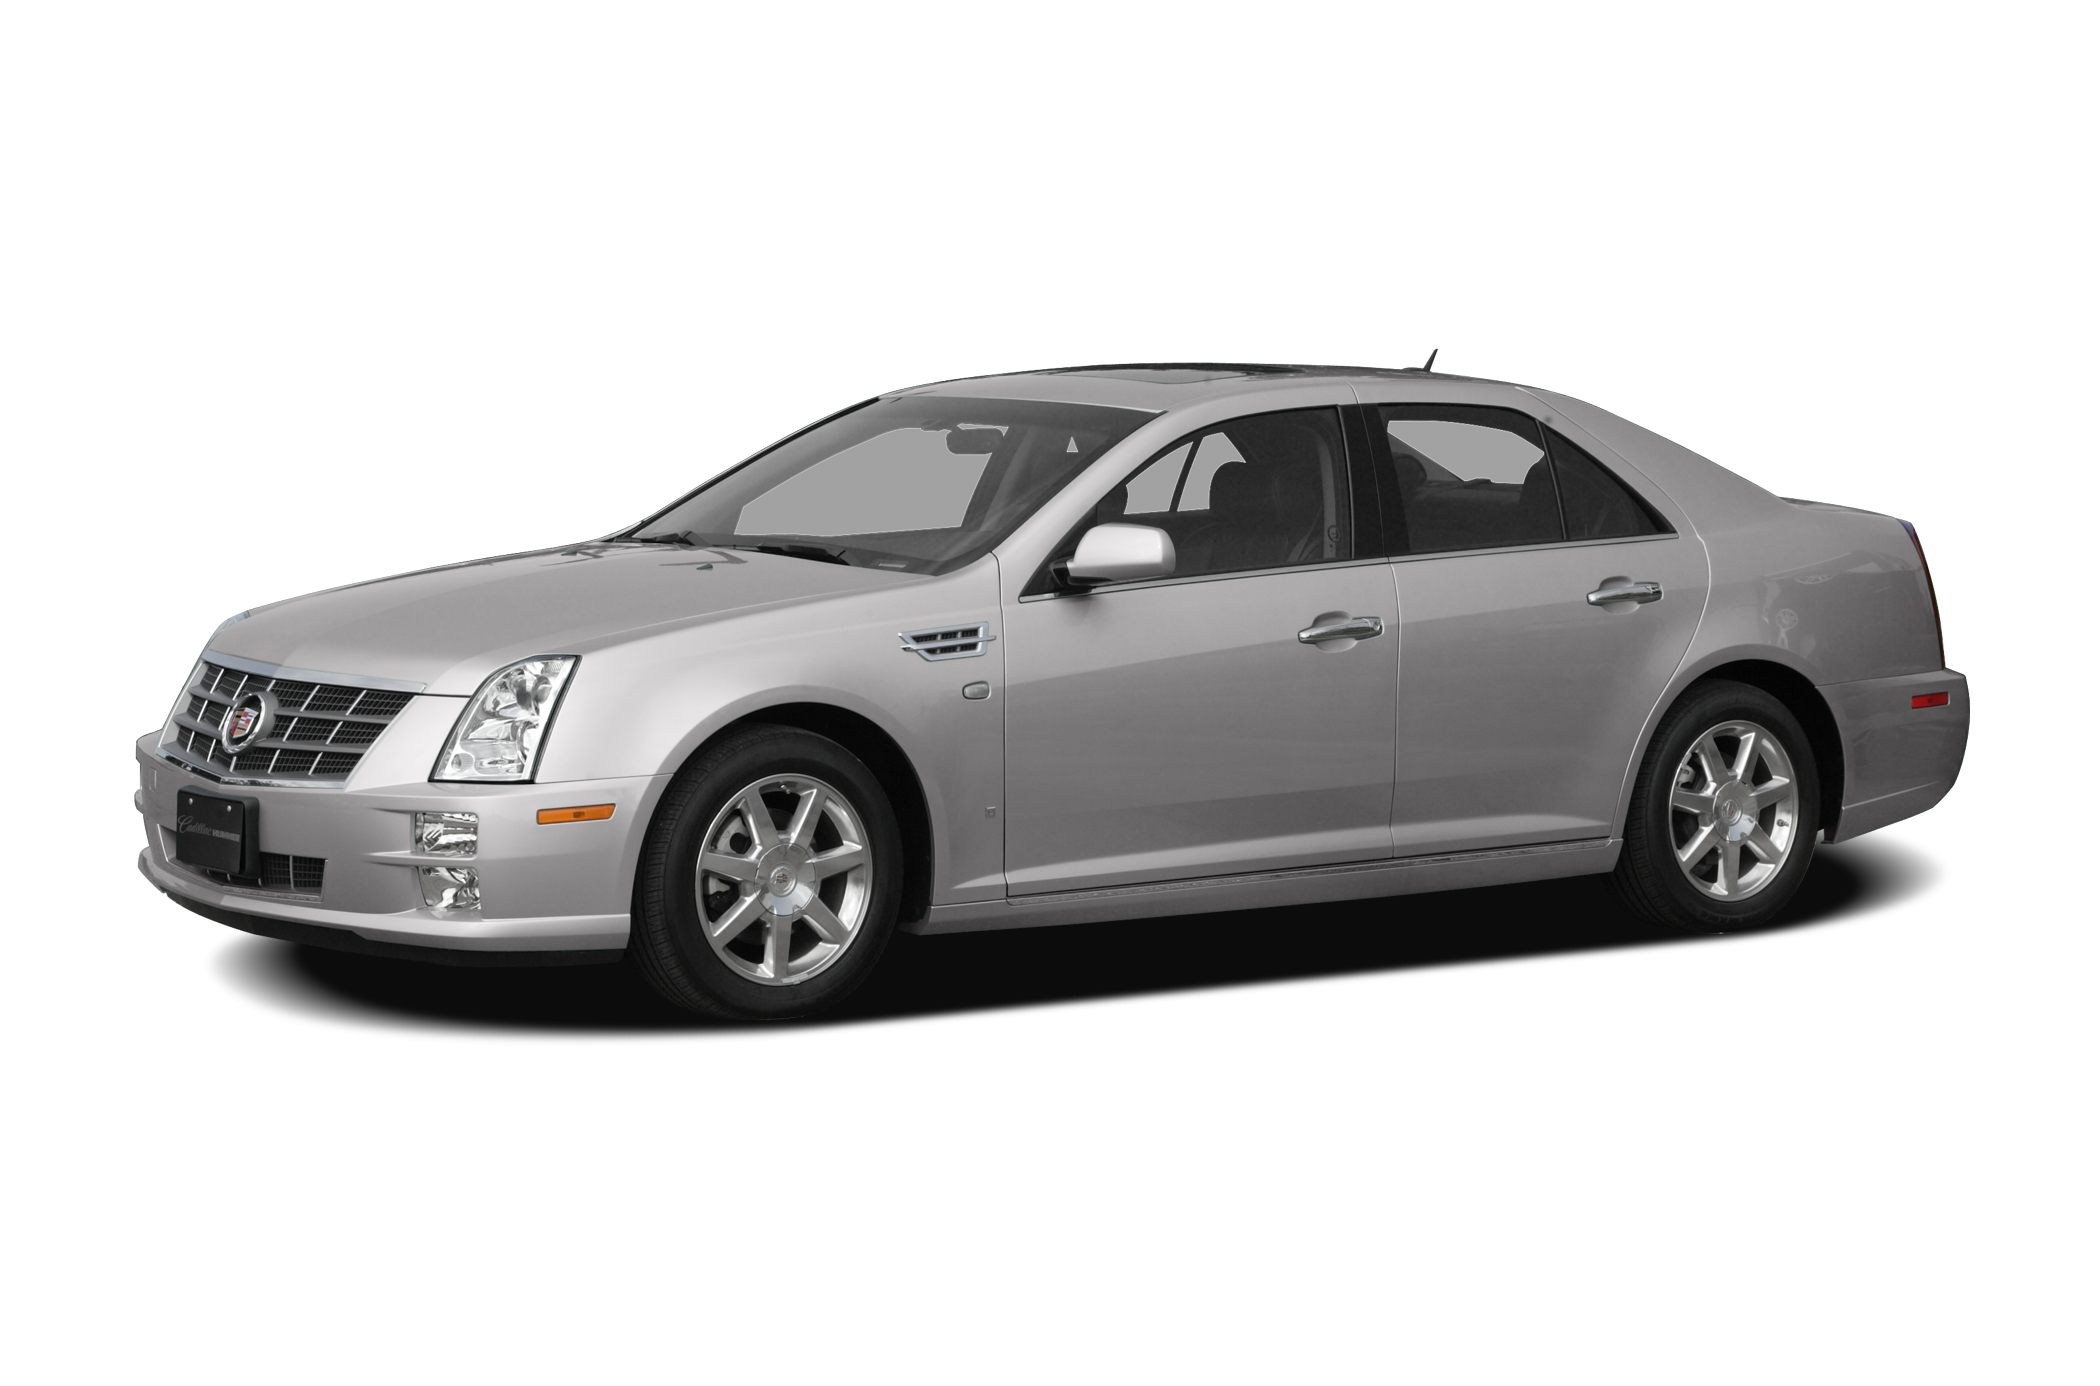 2008 Cadillac STS V6 Sedan for sale in Kennett for $16,900 with 46,493 miles.